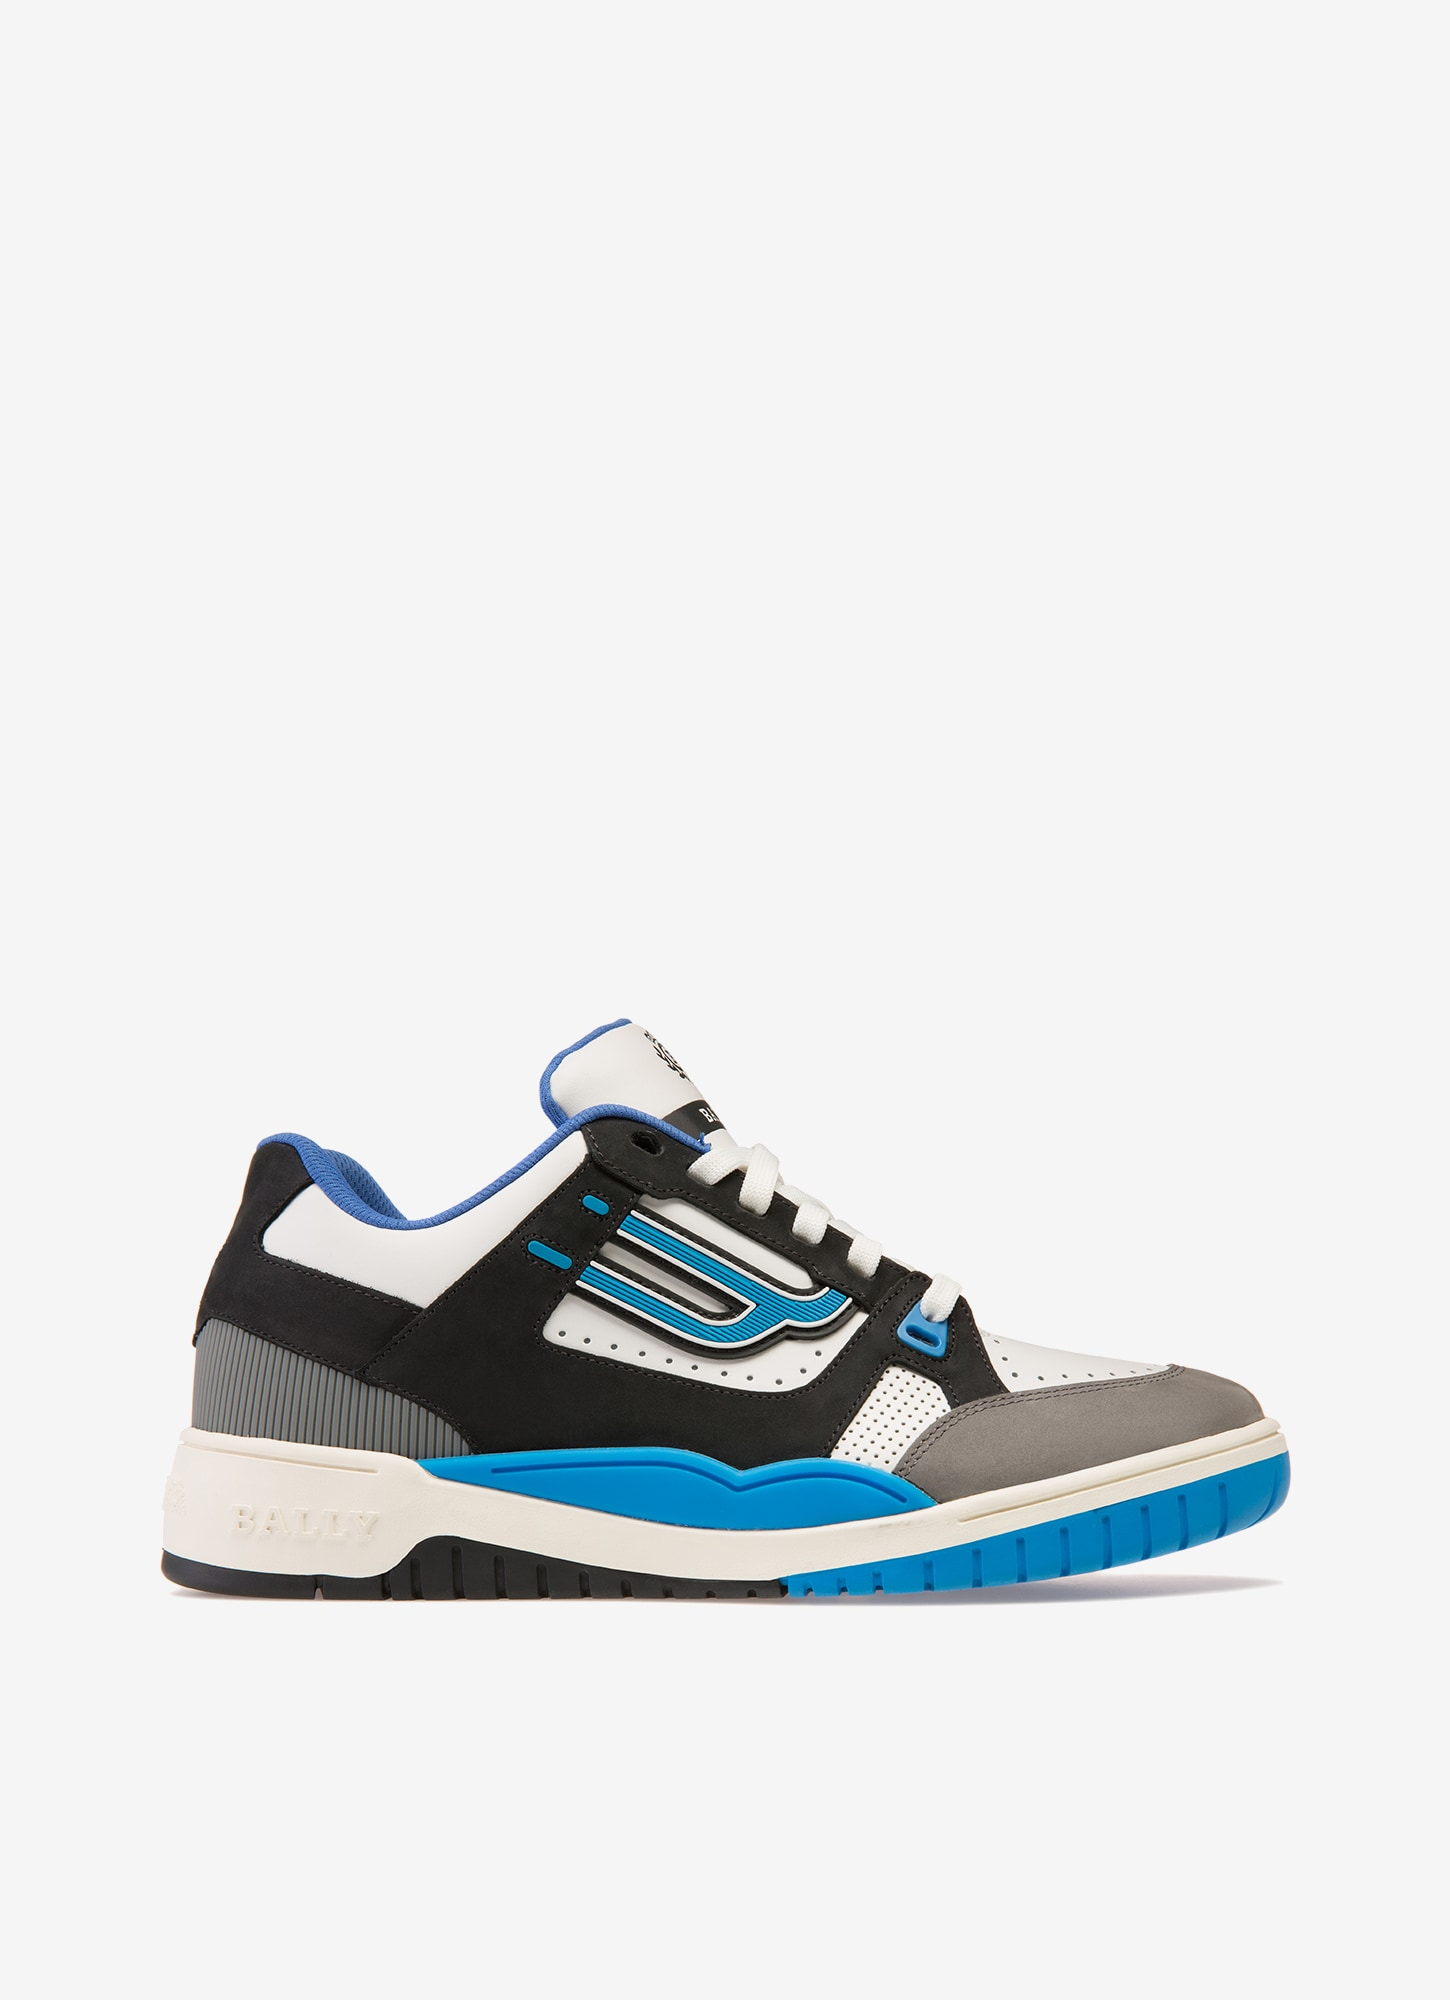 Mens Designer Trainers Bally Blue Sneakers